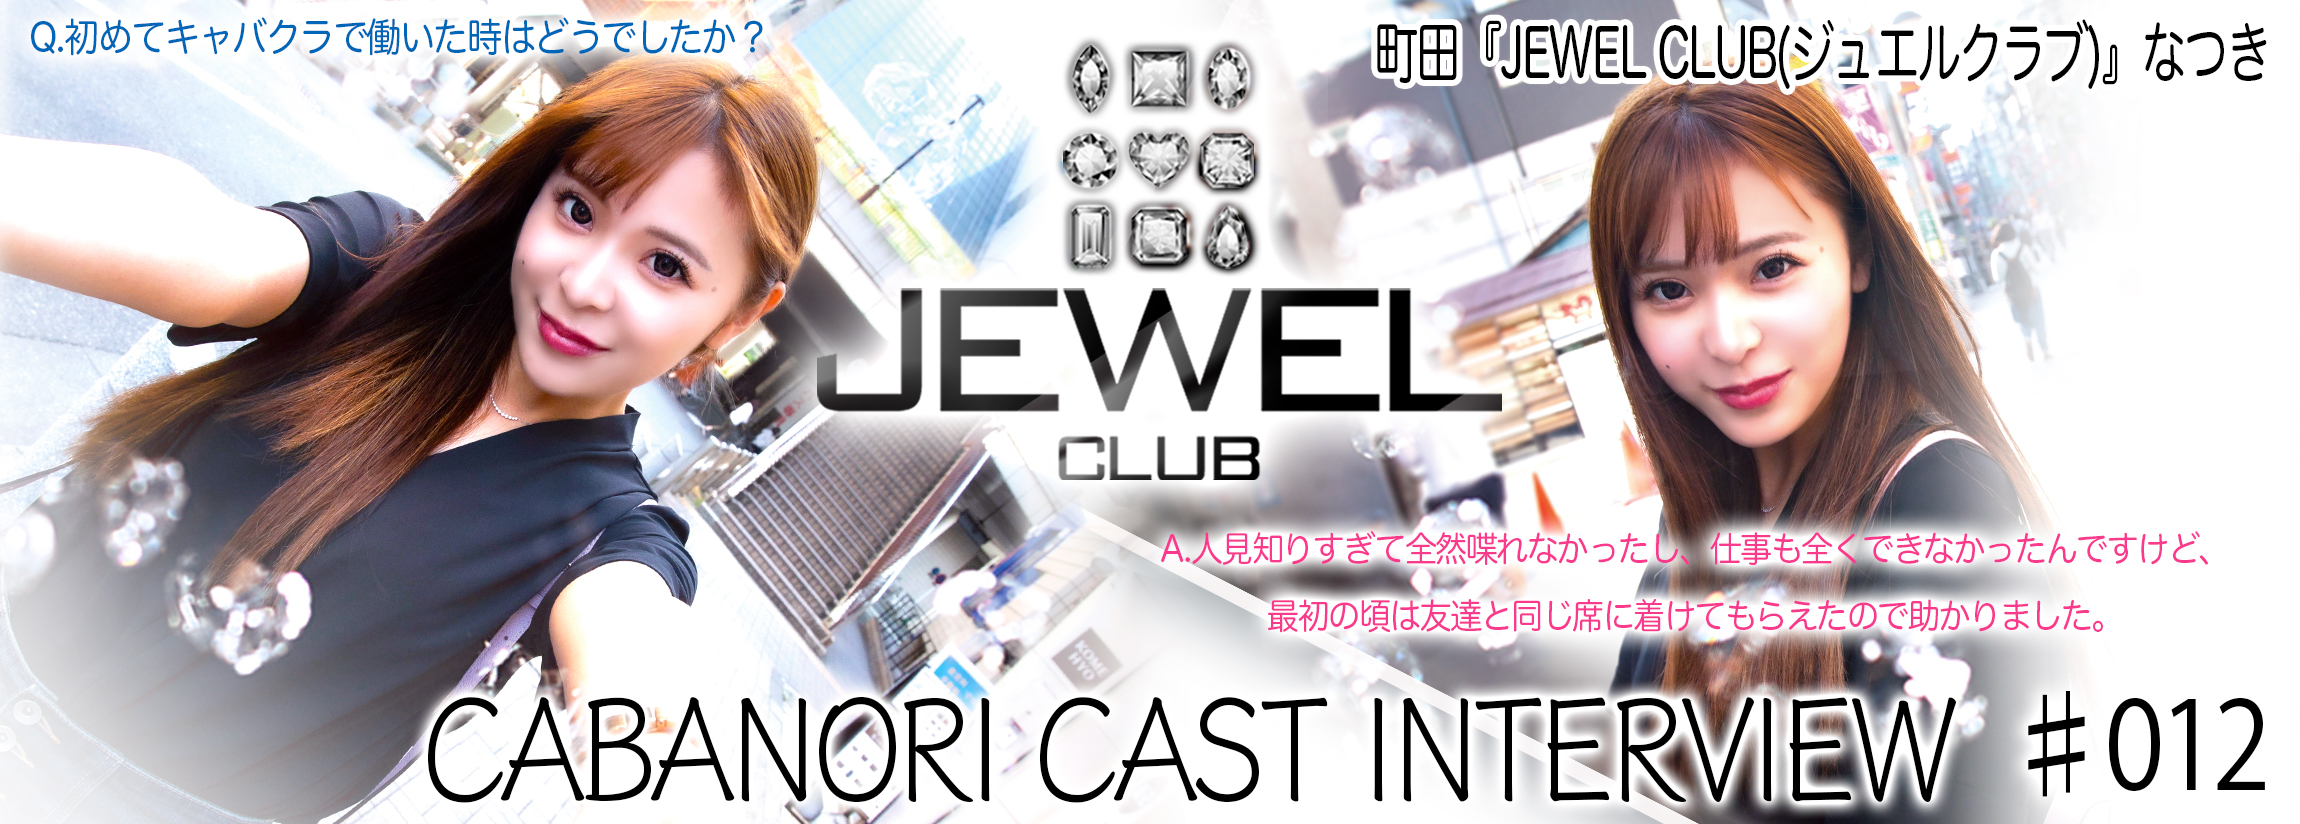 【CAST INTERVIEW】町田『JEWEL CLUB』なつき